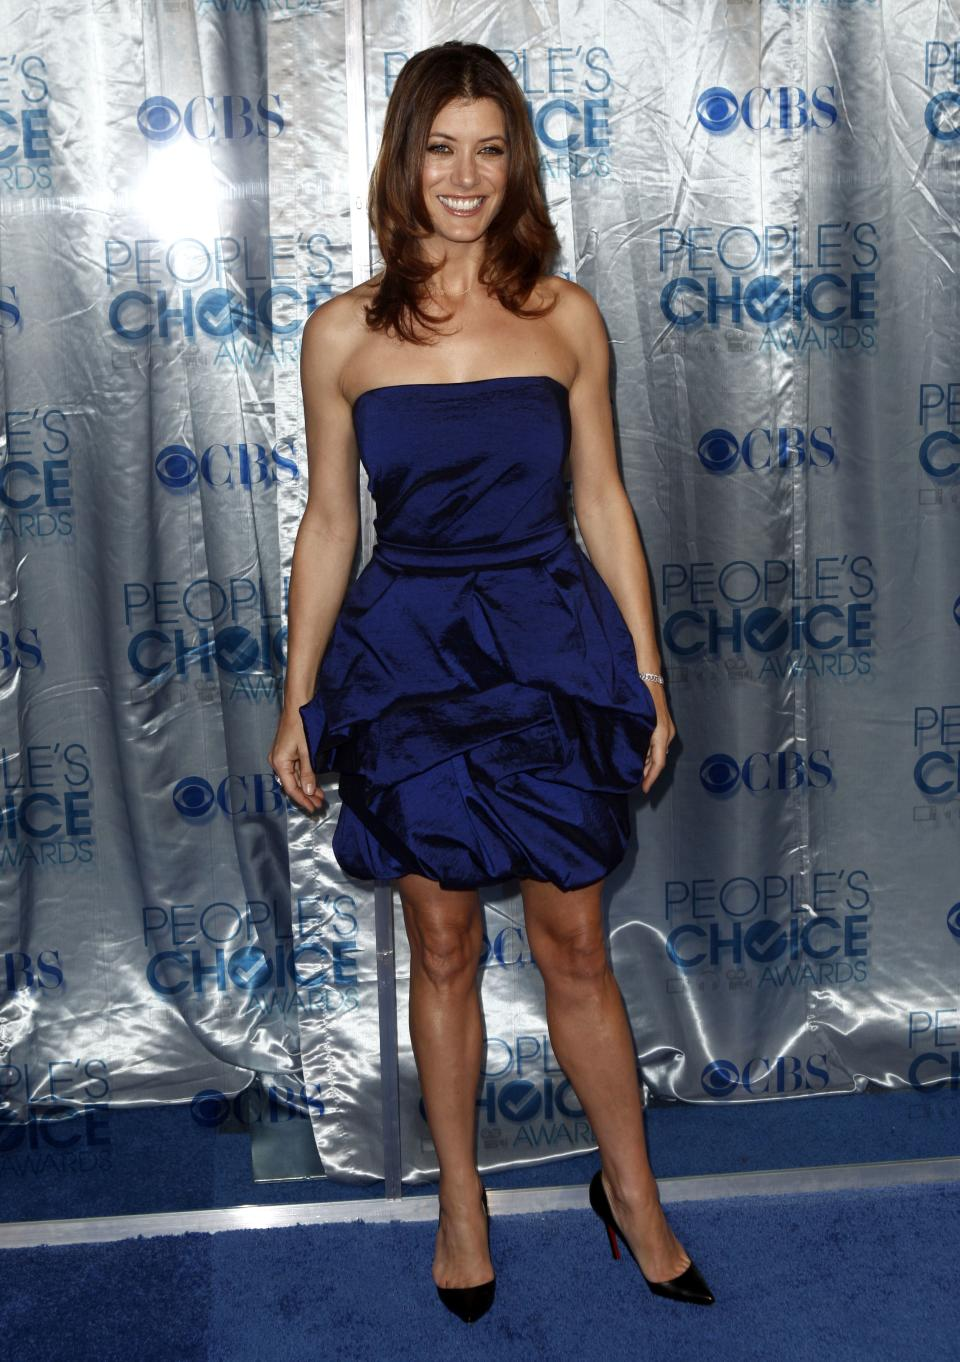 Kate Walsh arrives at the People's Choice Awards on Wednesday, Jan. 5, 2011, in Los Angeles. (AP Photo/Matt Sayles)